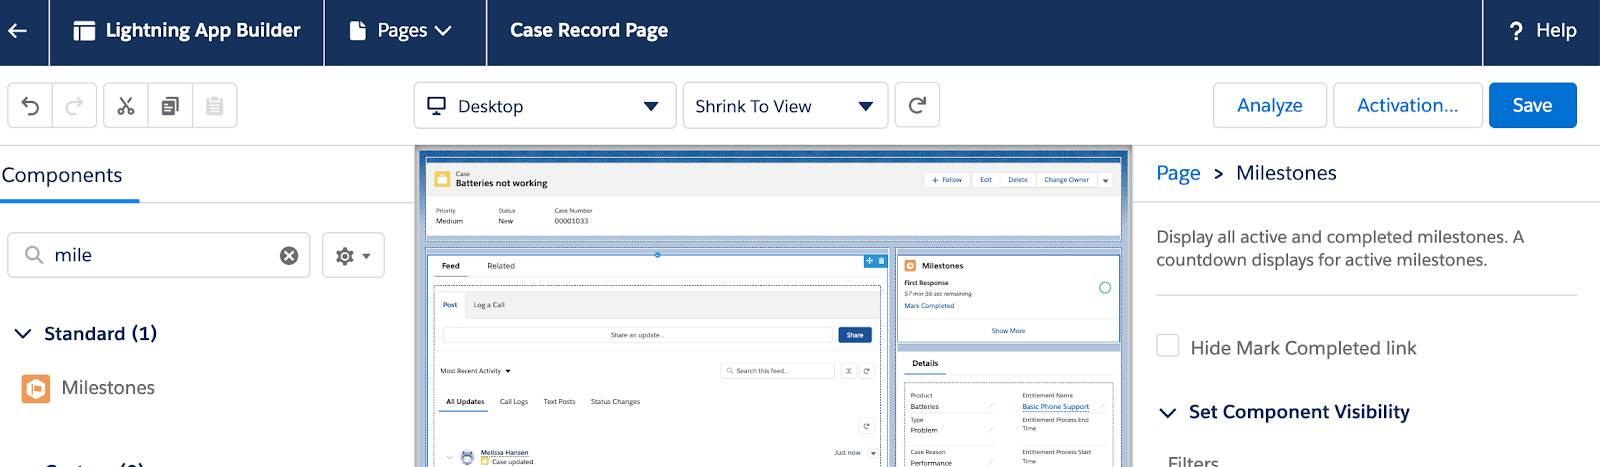 Edit the Case Page and Add the Milestone Tracker Component to view your milestone timelines on the case record page.